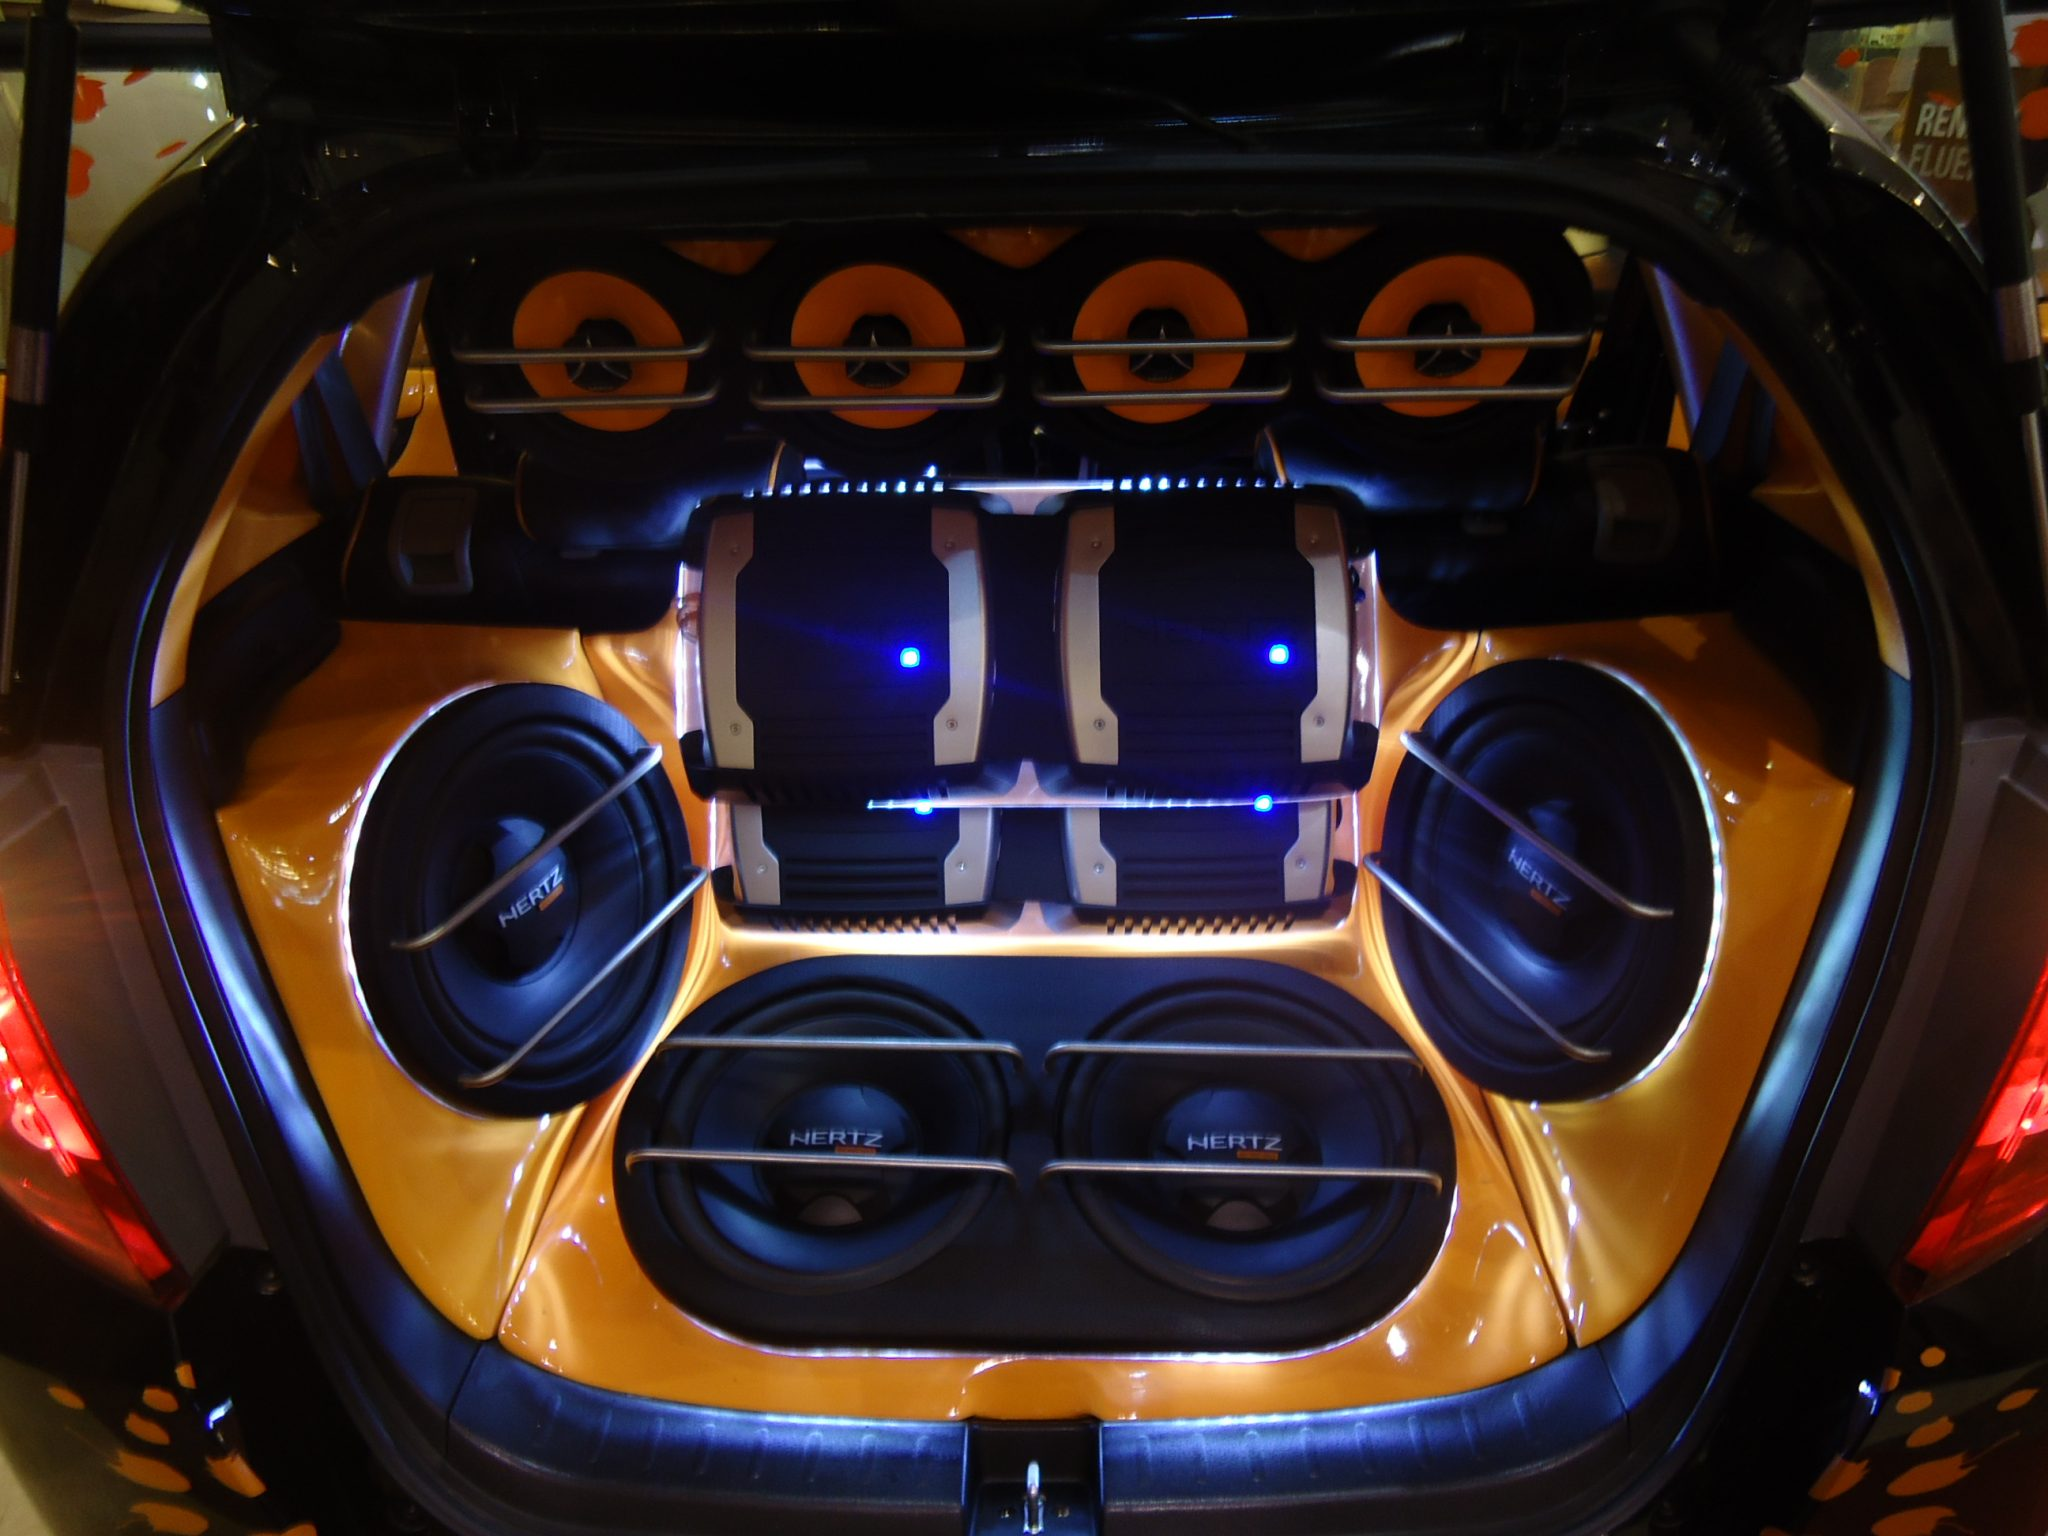 Tips on Audio and Subwoofer